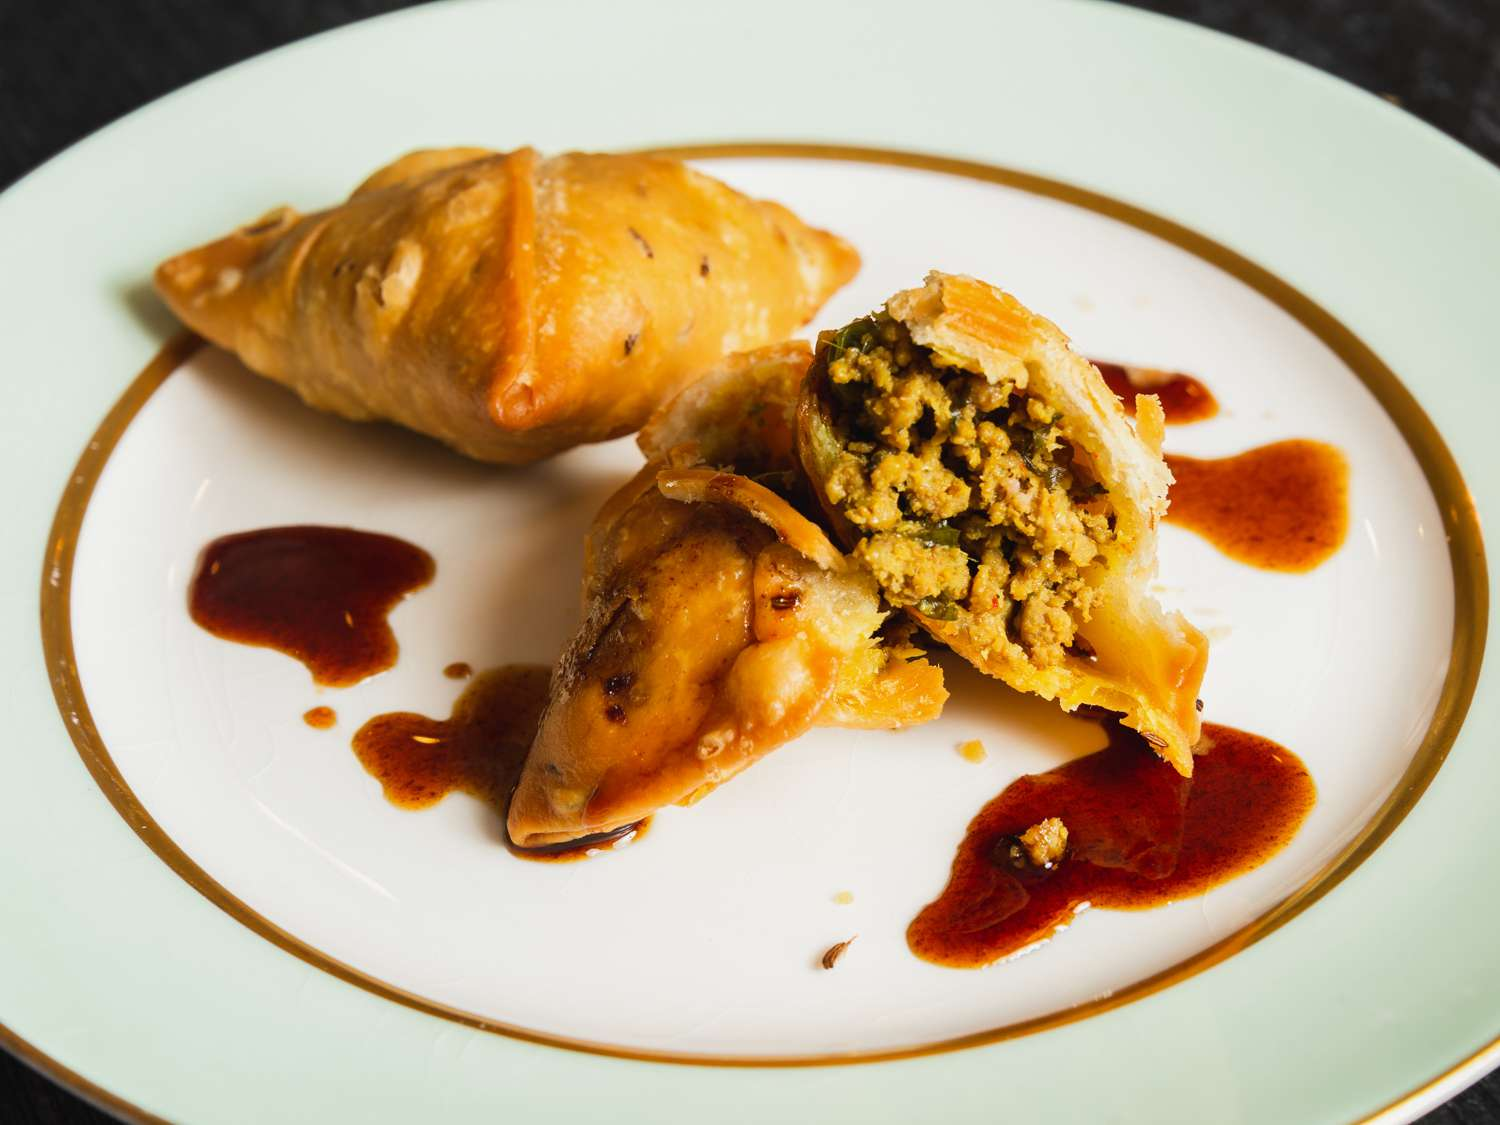 Two kheema samosas on a plate, one broken open to show its interior